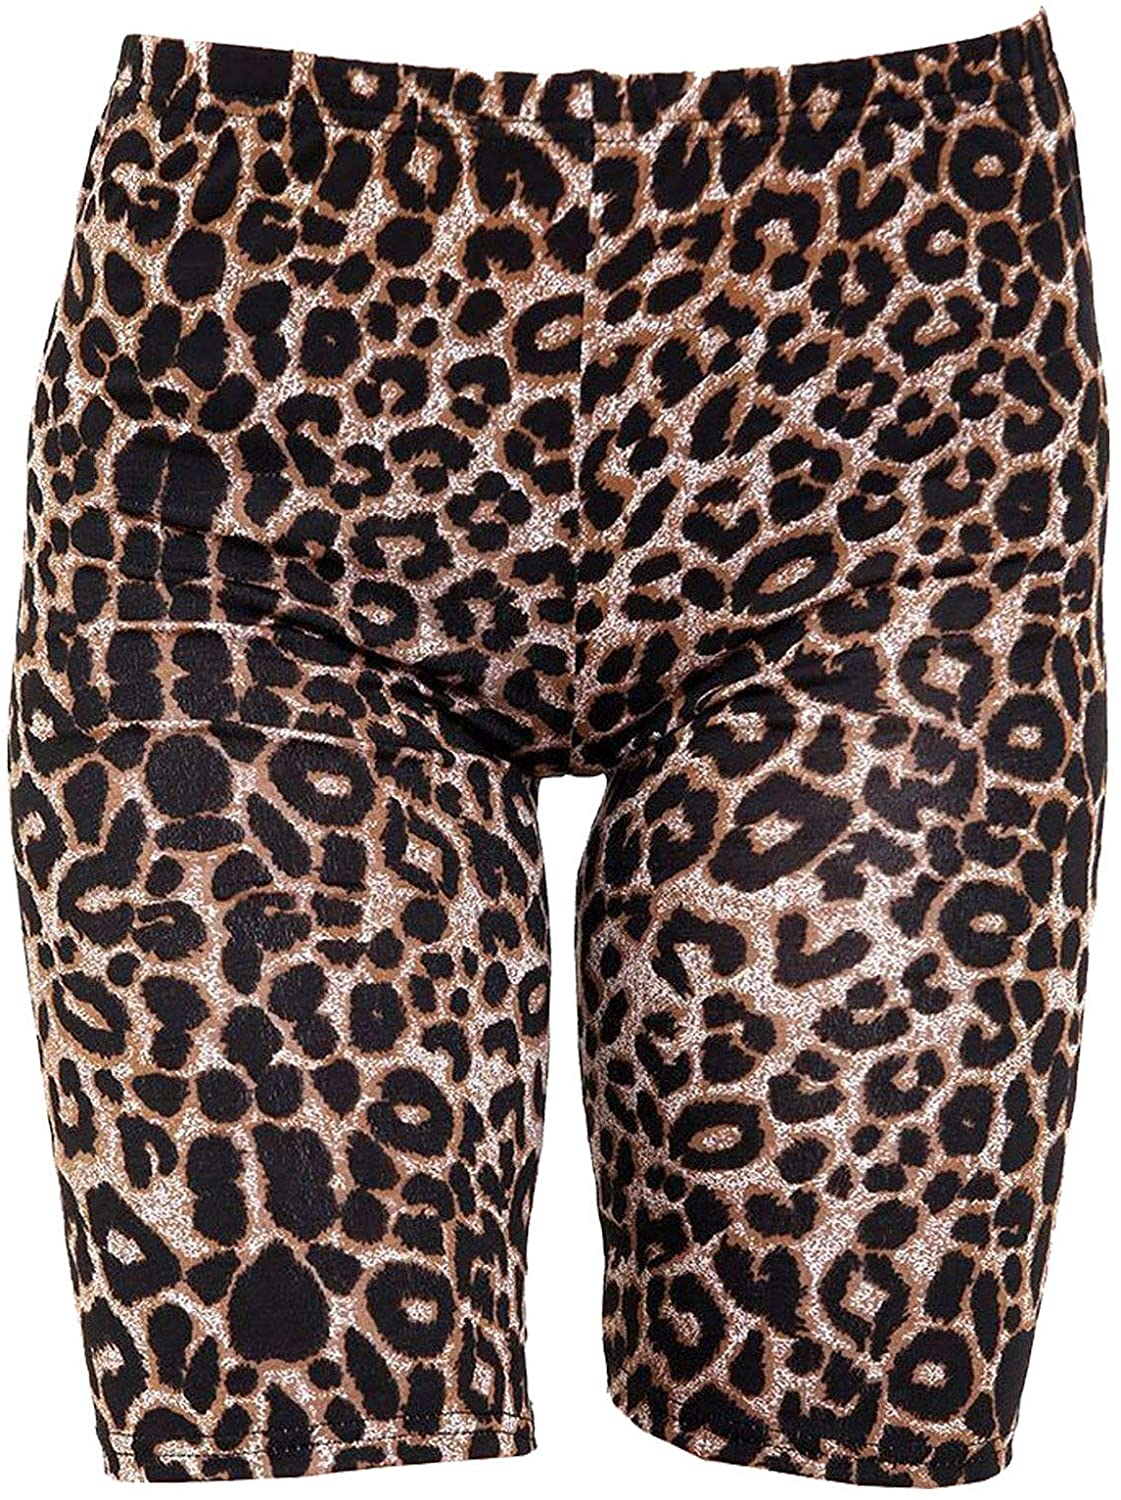 Rimi Hanger Womens Camouflage Leopard Print Cycling Shorts Ladies Sports Gym Wear Hot Pants S/2XL